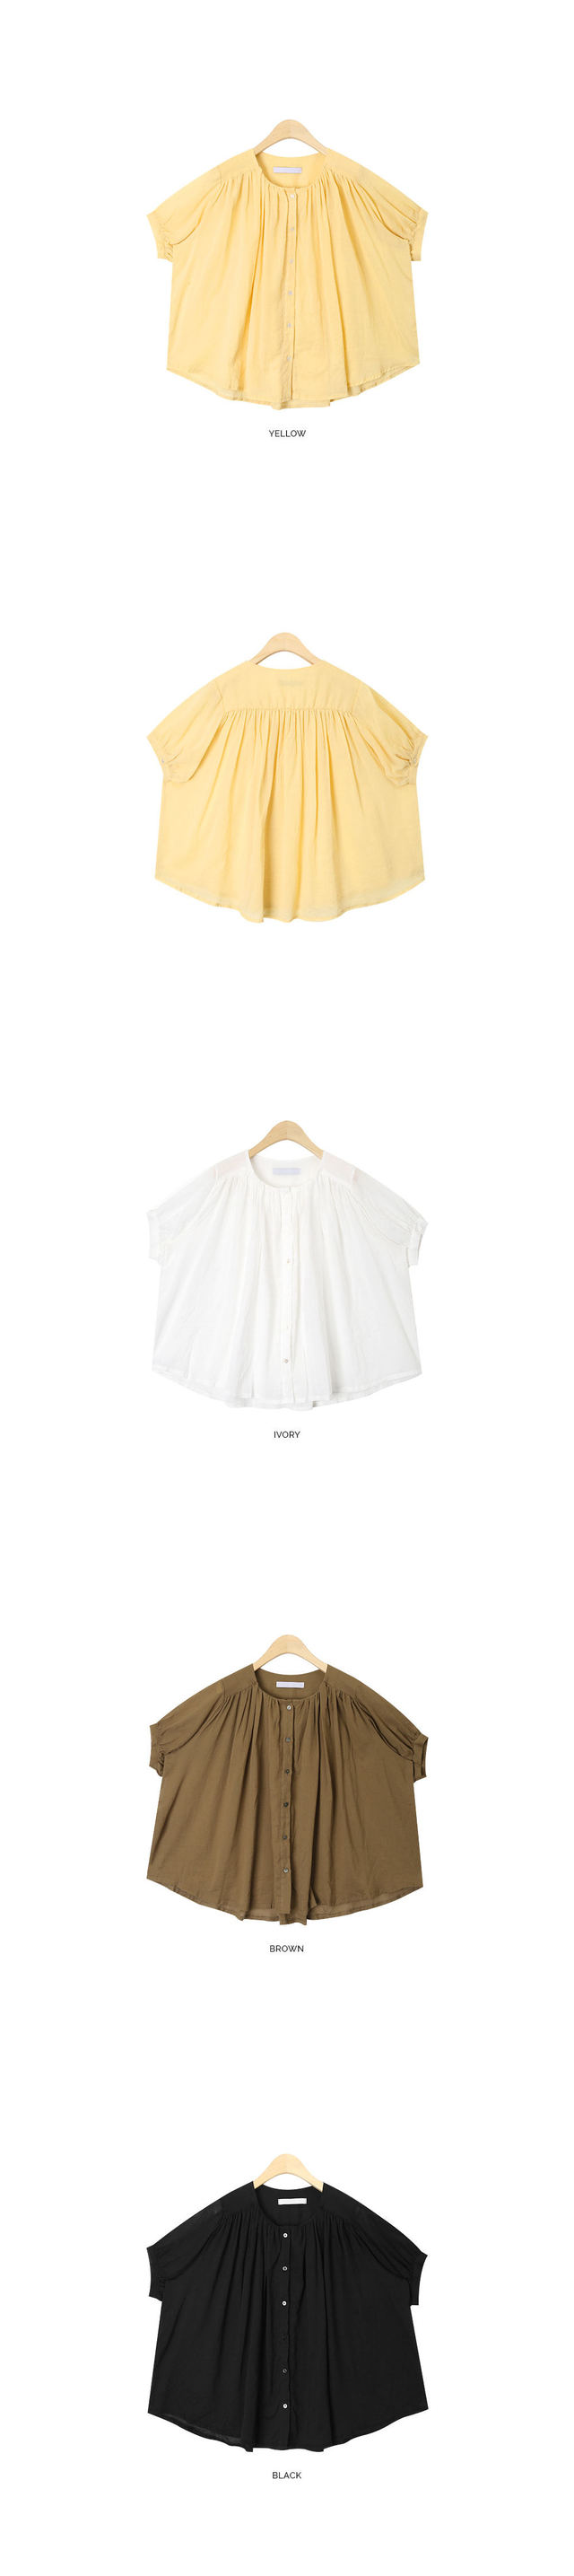 Isabel pleats blouse